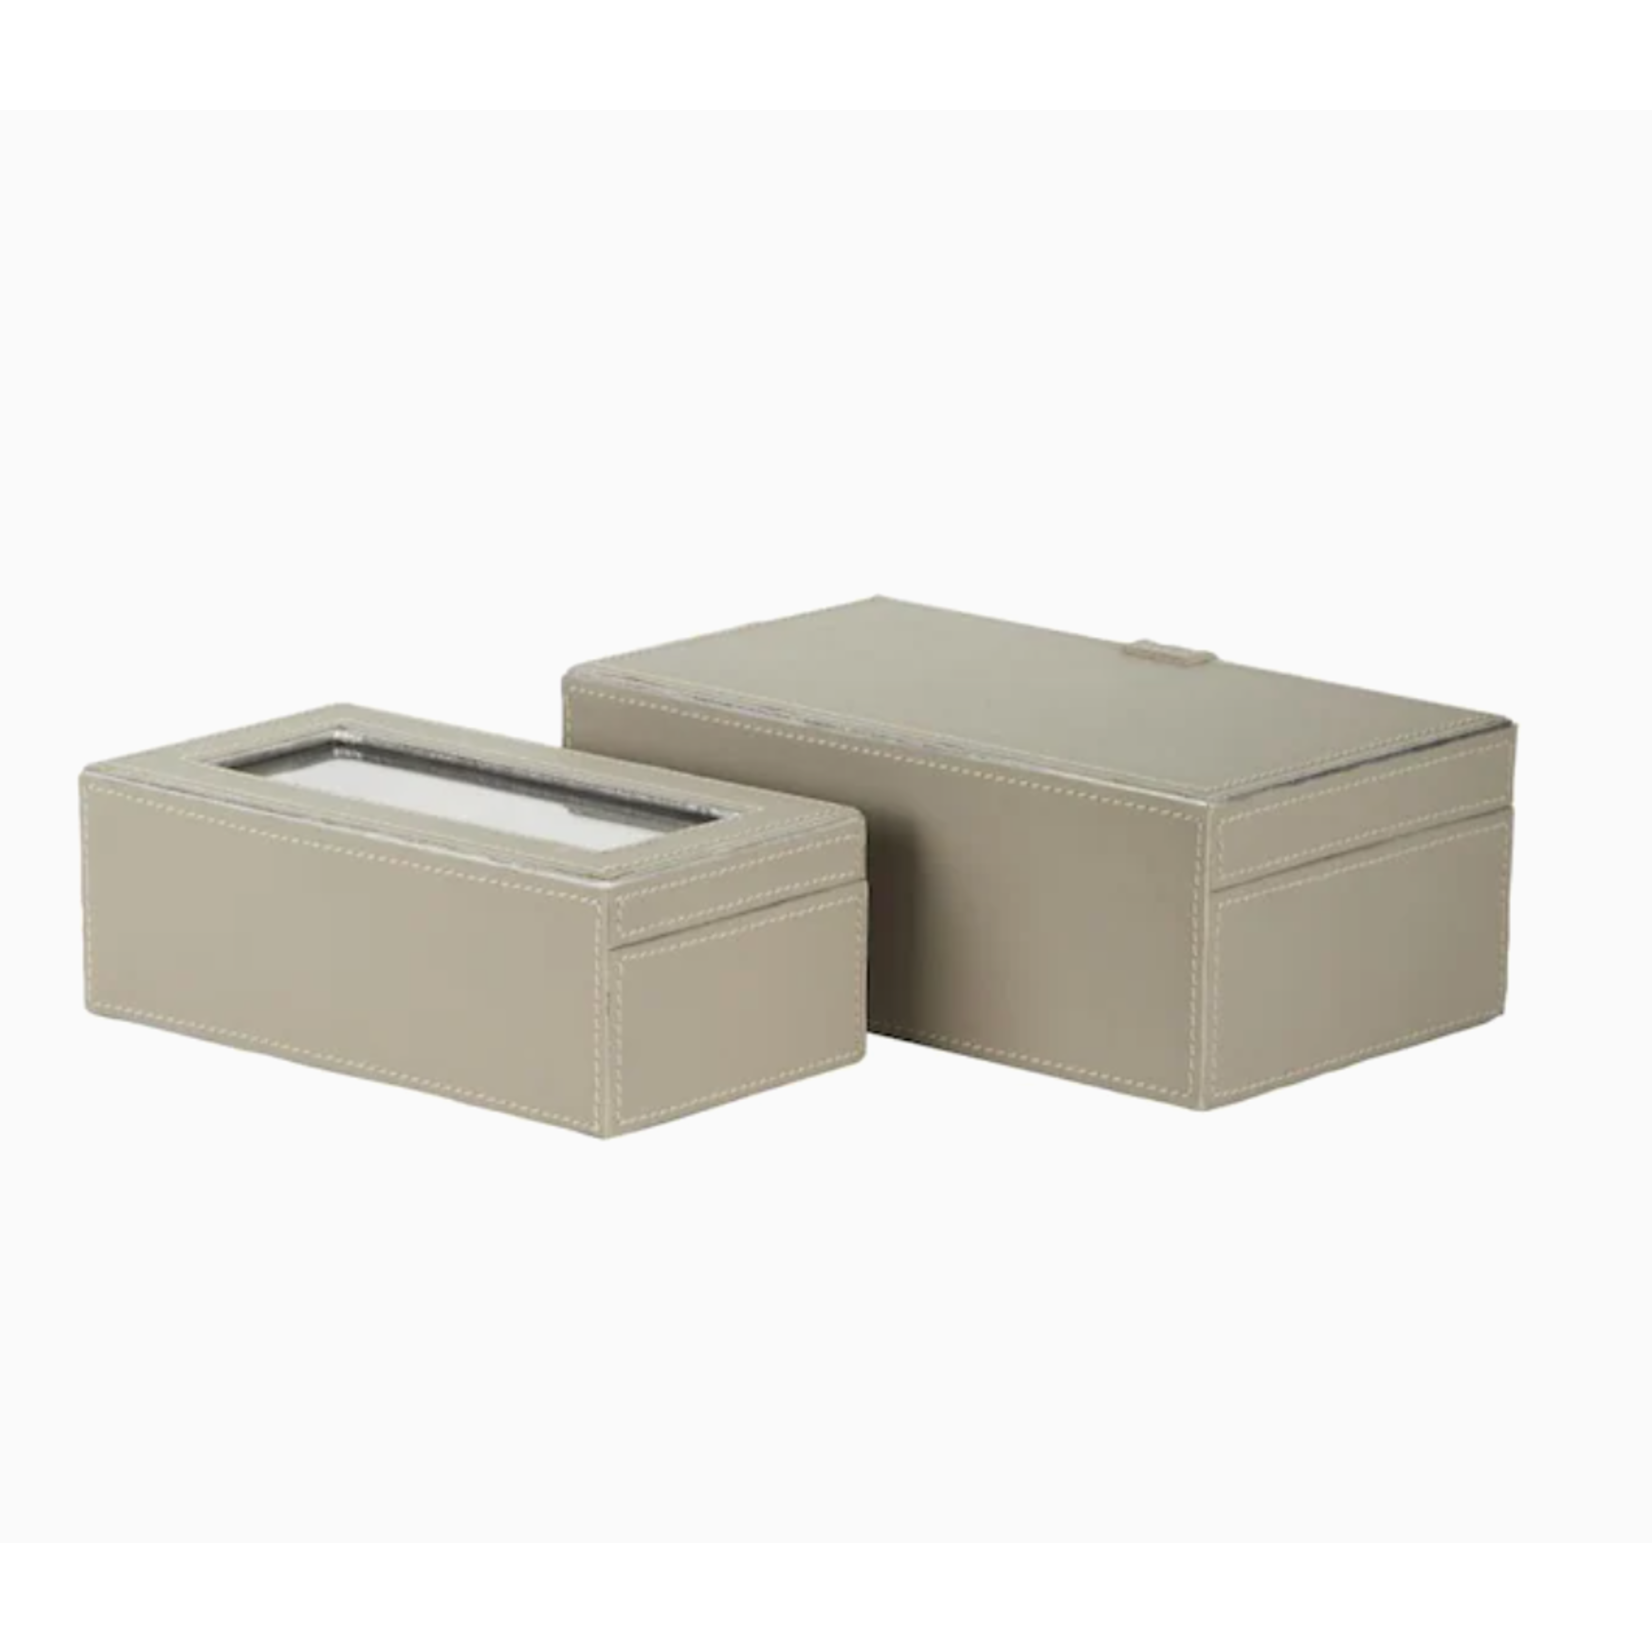 *Set of 2 Beige Leather Boxes